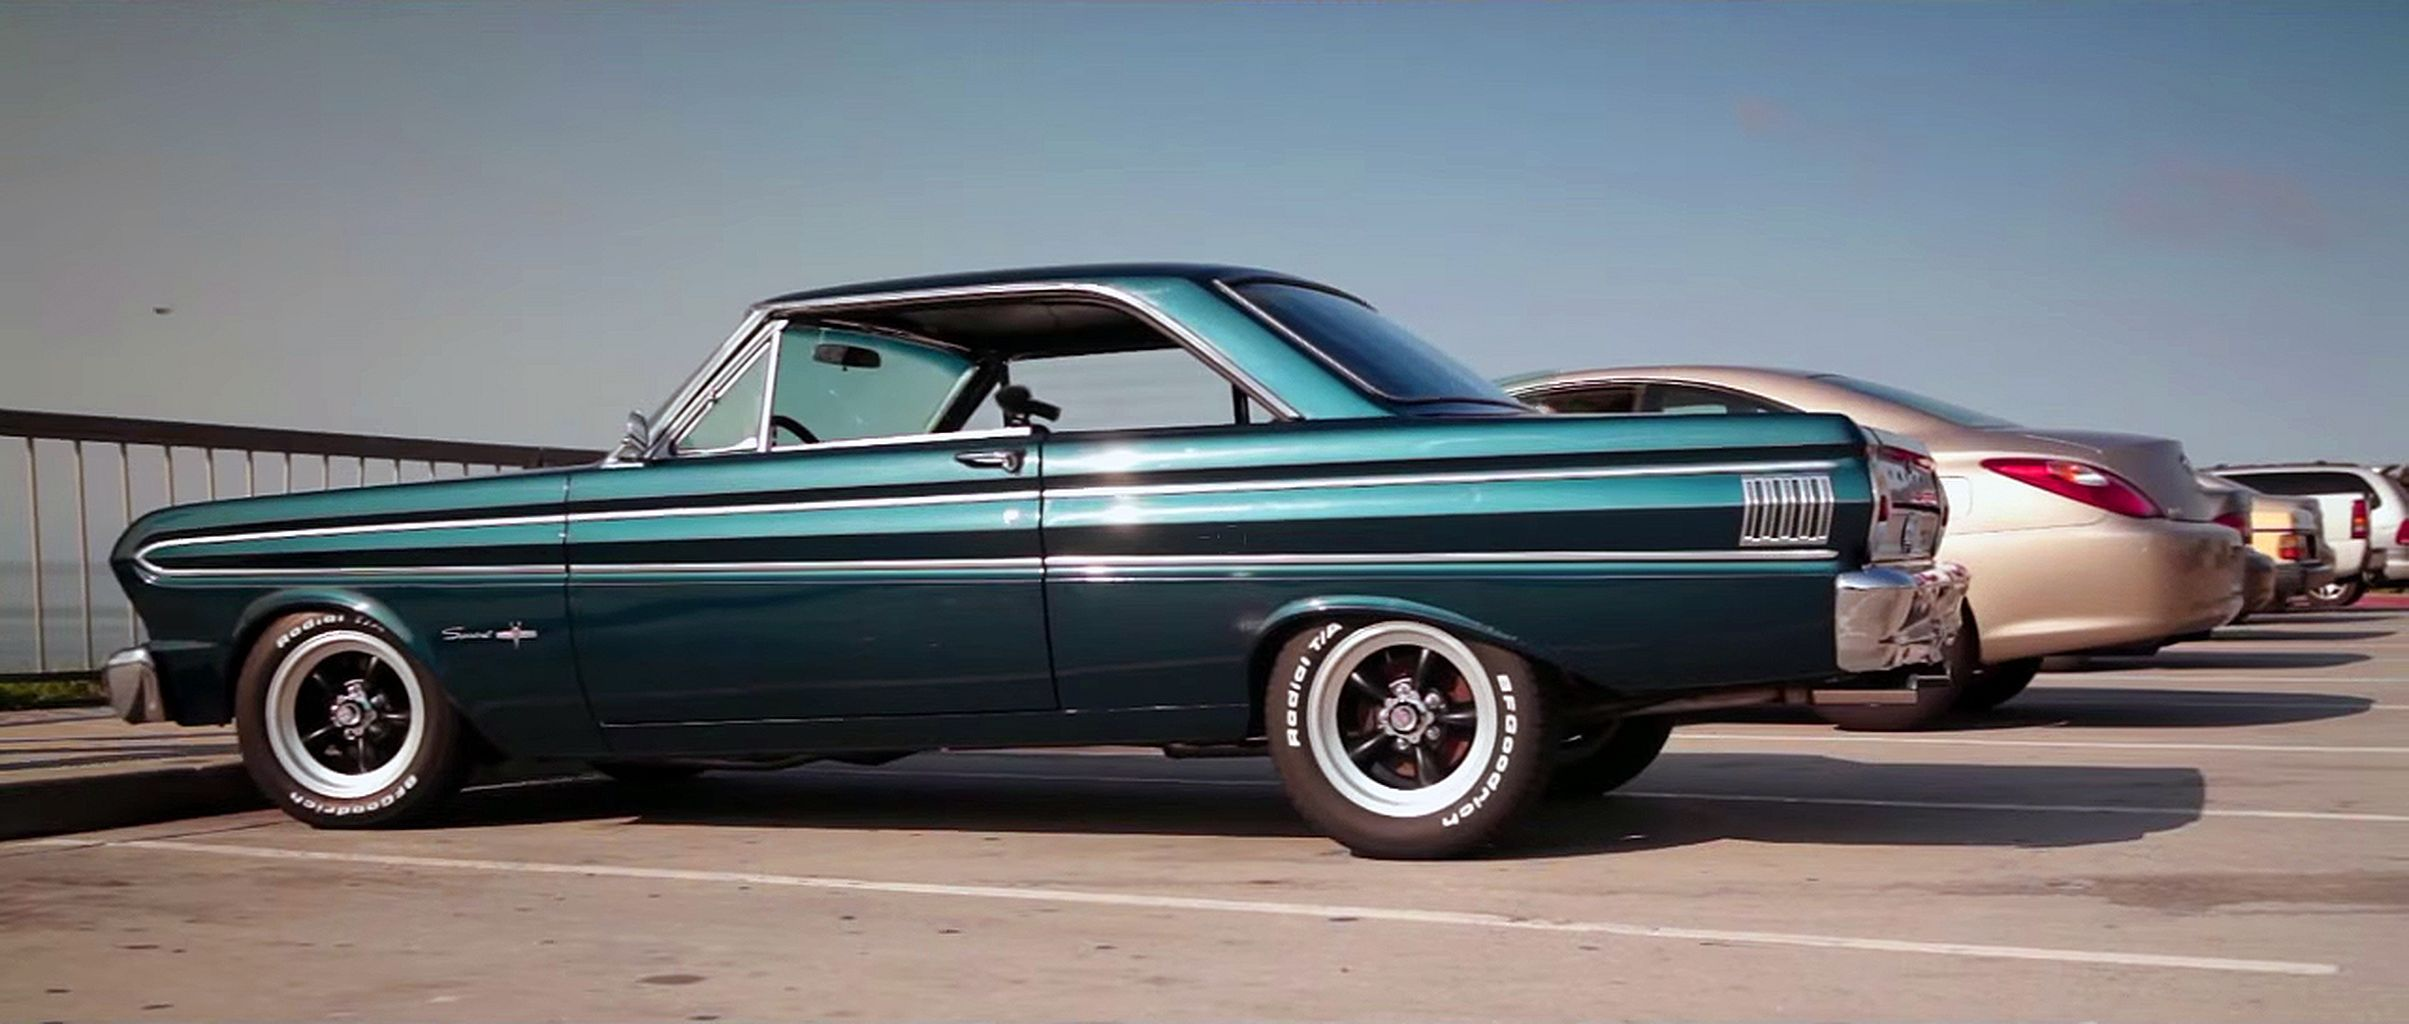 Best+49 Ford Falcon 1964 Custom Muscle Cars Ideas For You   Fast